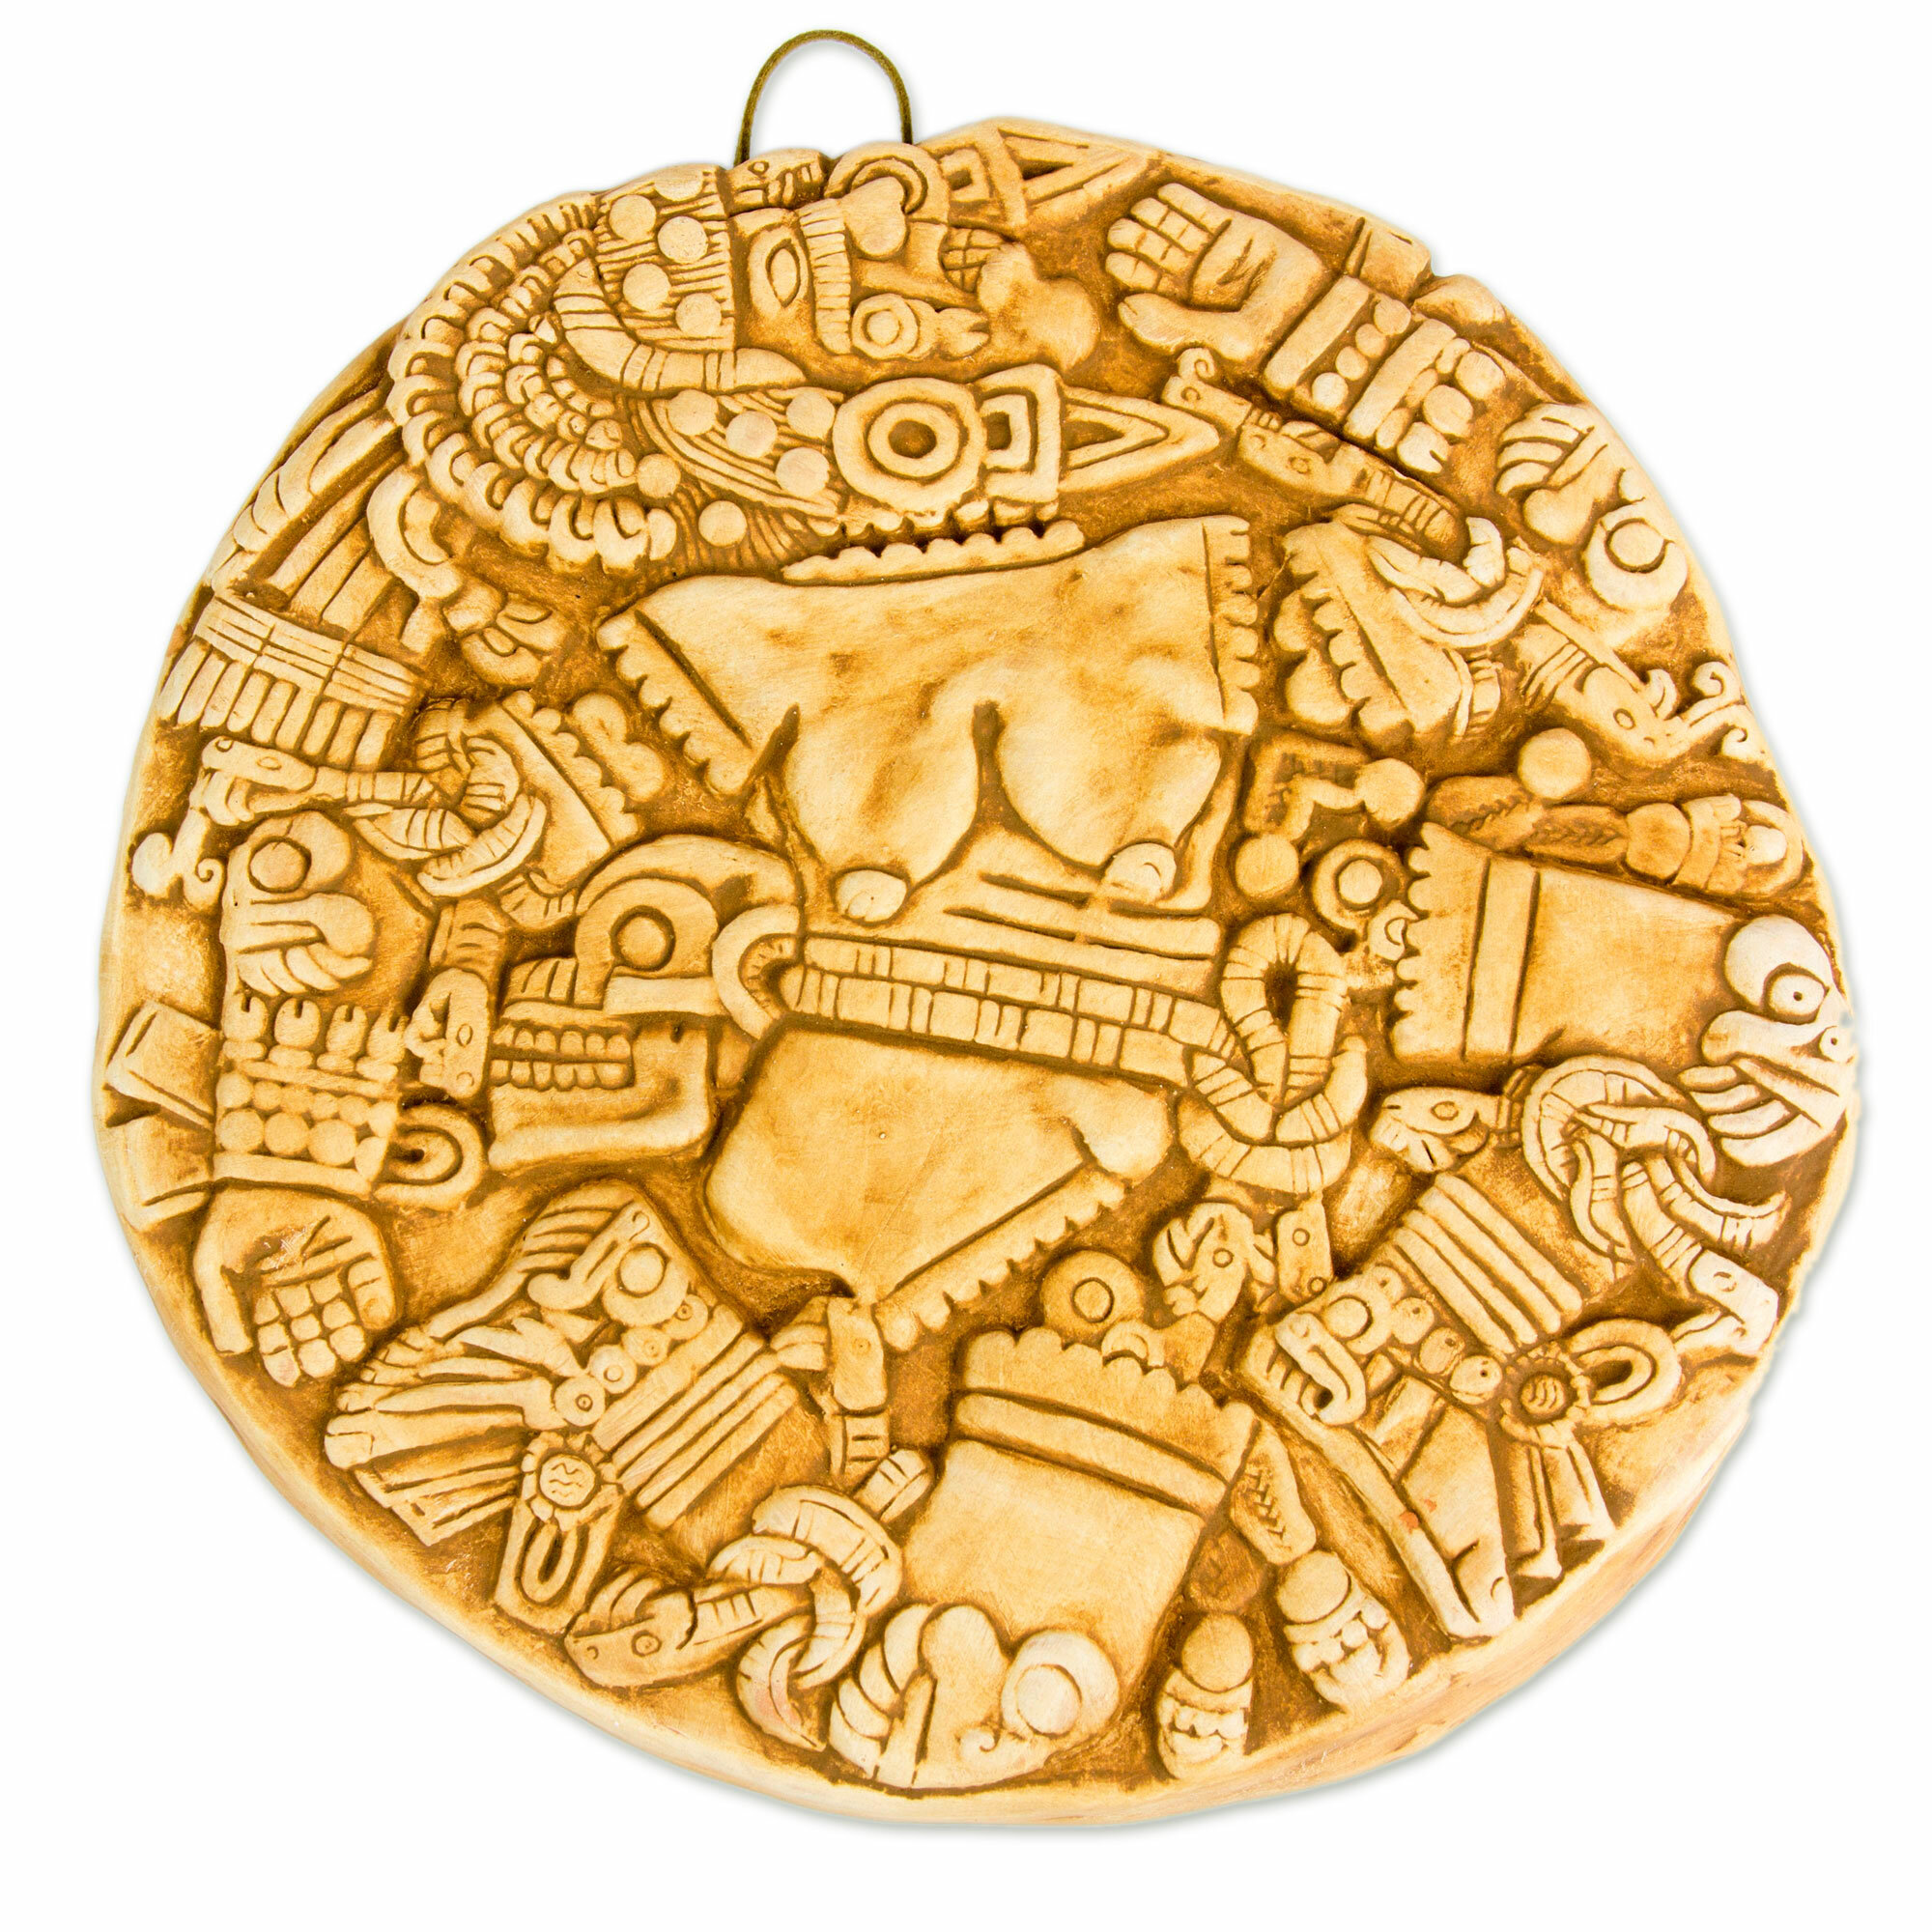 Novica Aztec Moon Goddess Collectible Hand Crafted Archaeological ...